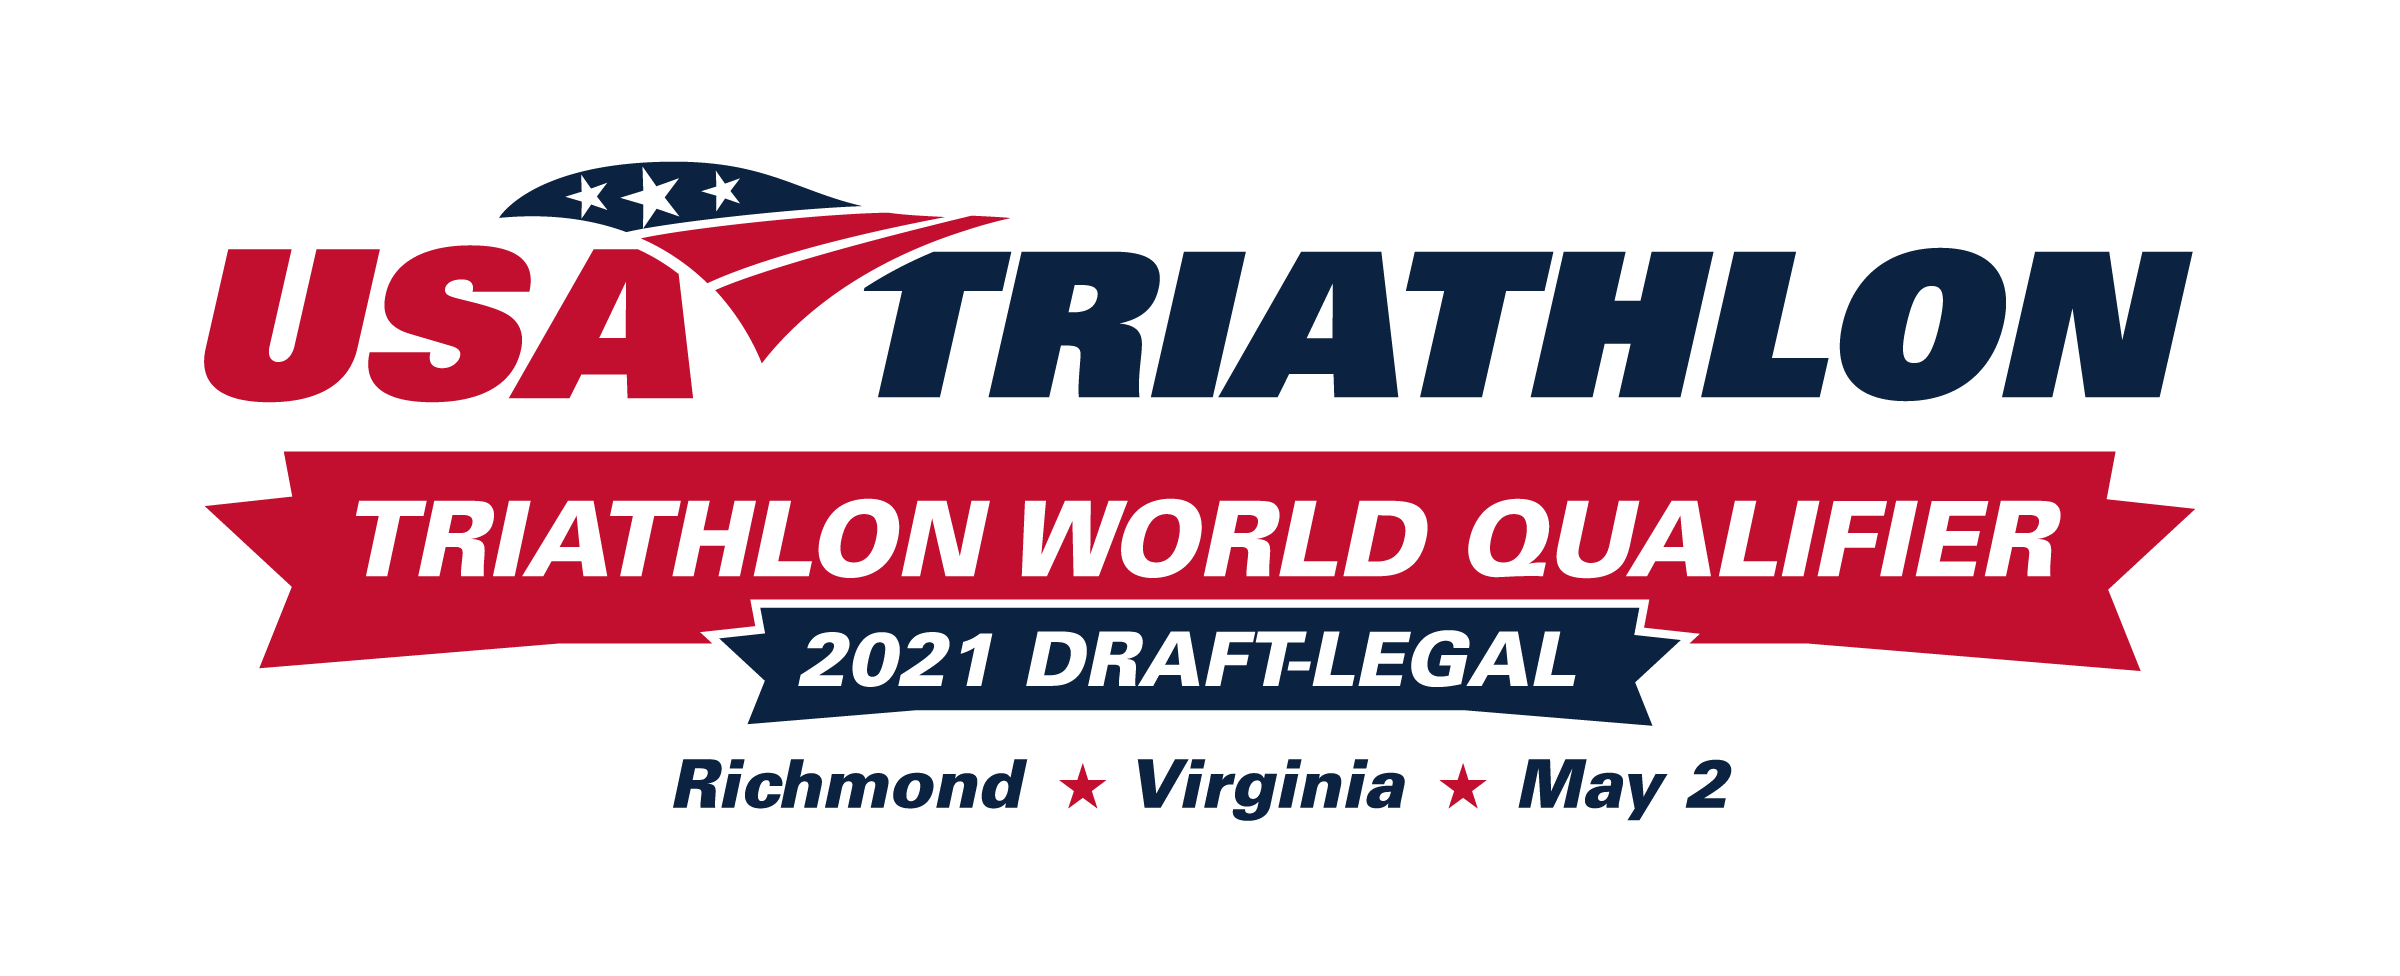 USA Triathlon Age Group Draft-Legal World Qualifier 2021